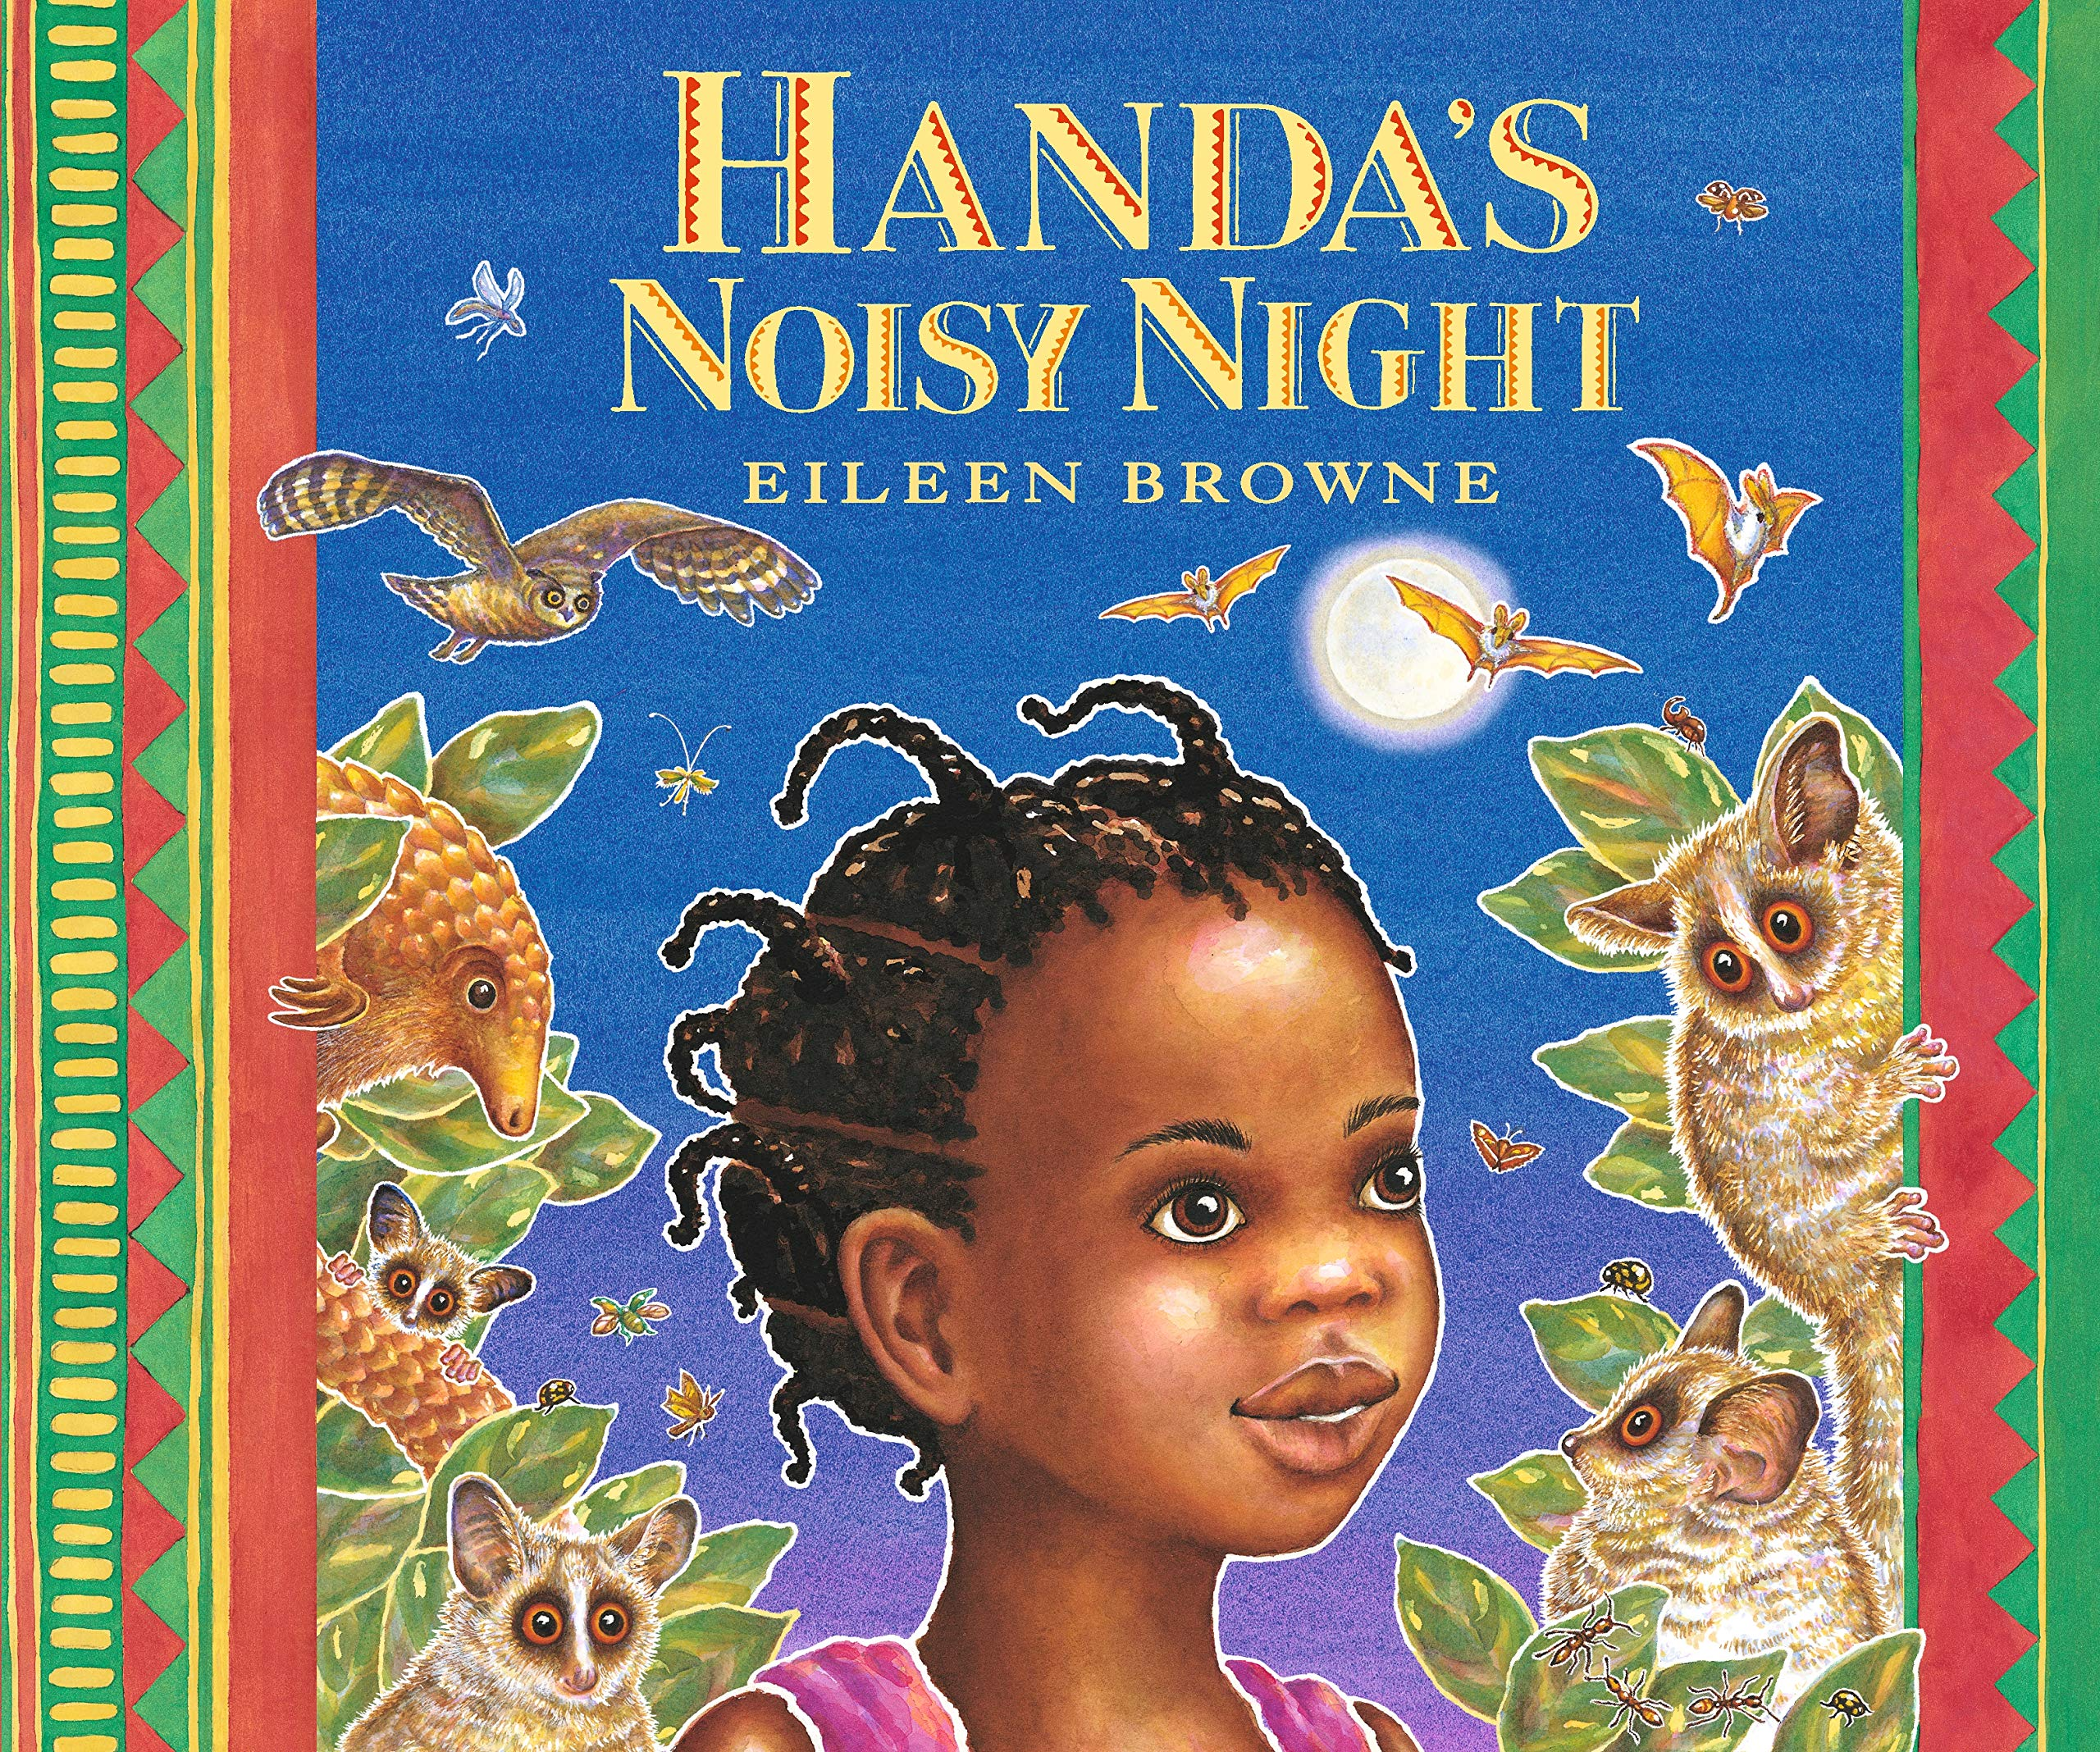 Image result for handa's noisy night